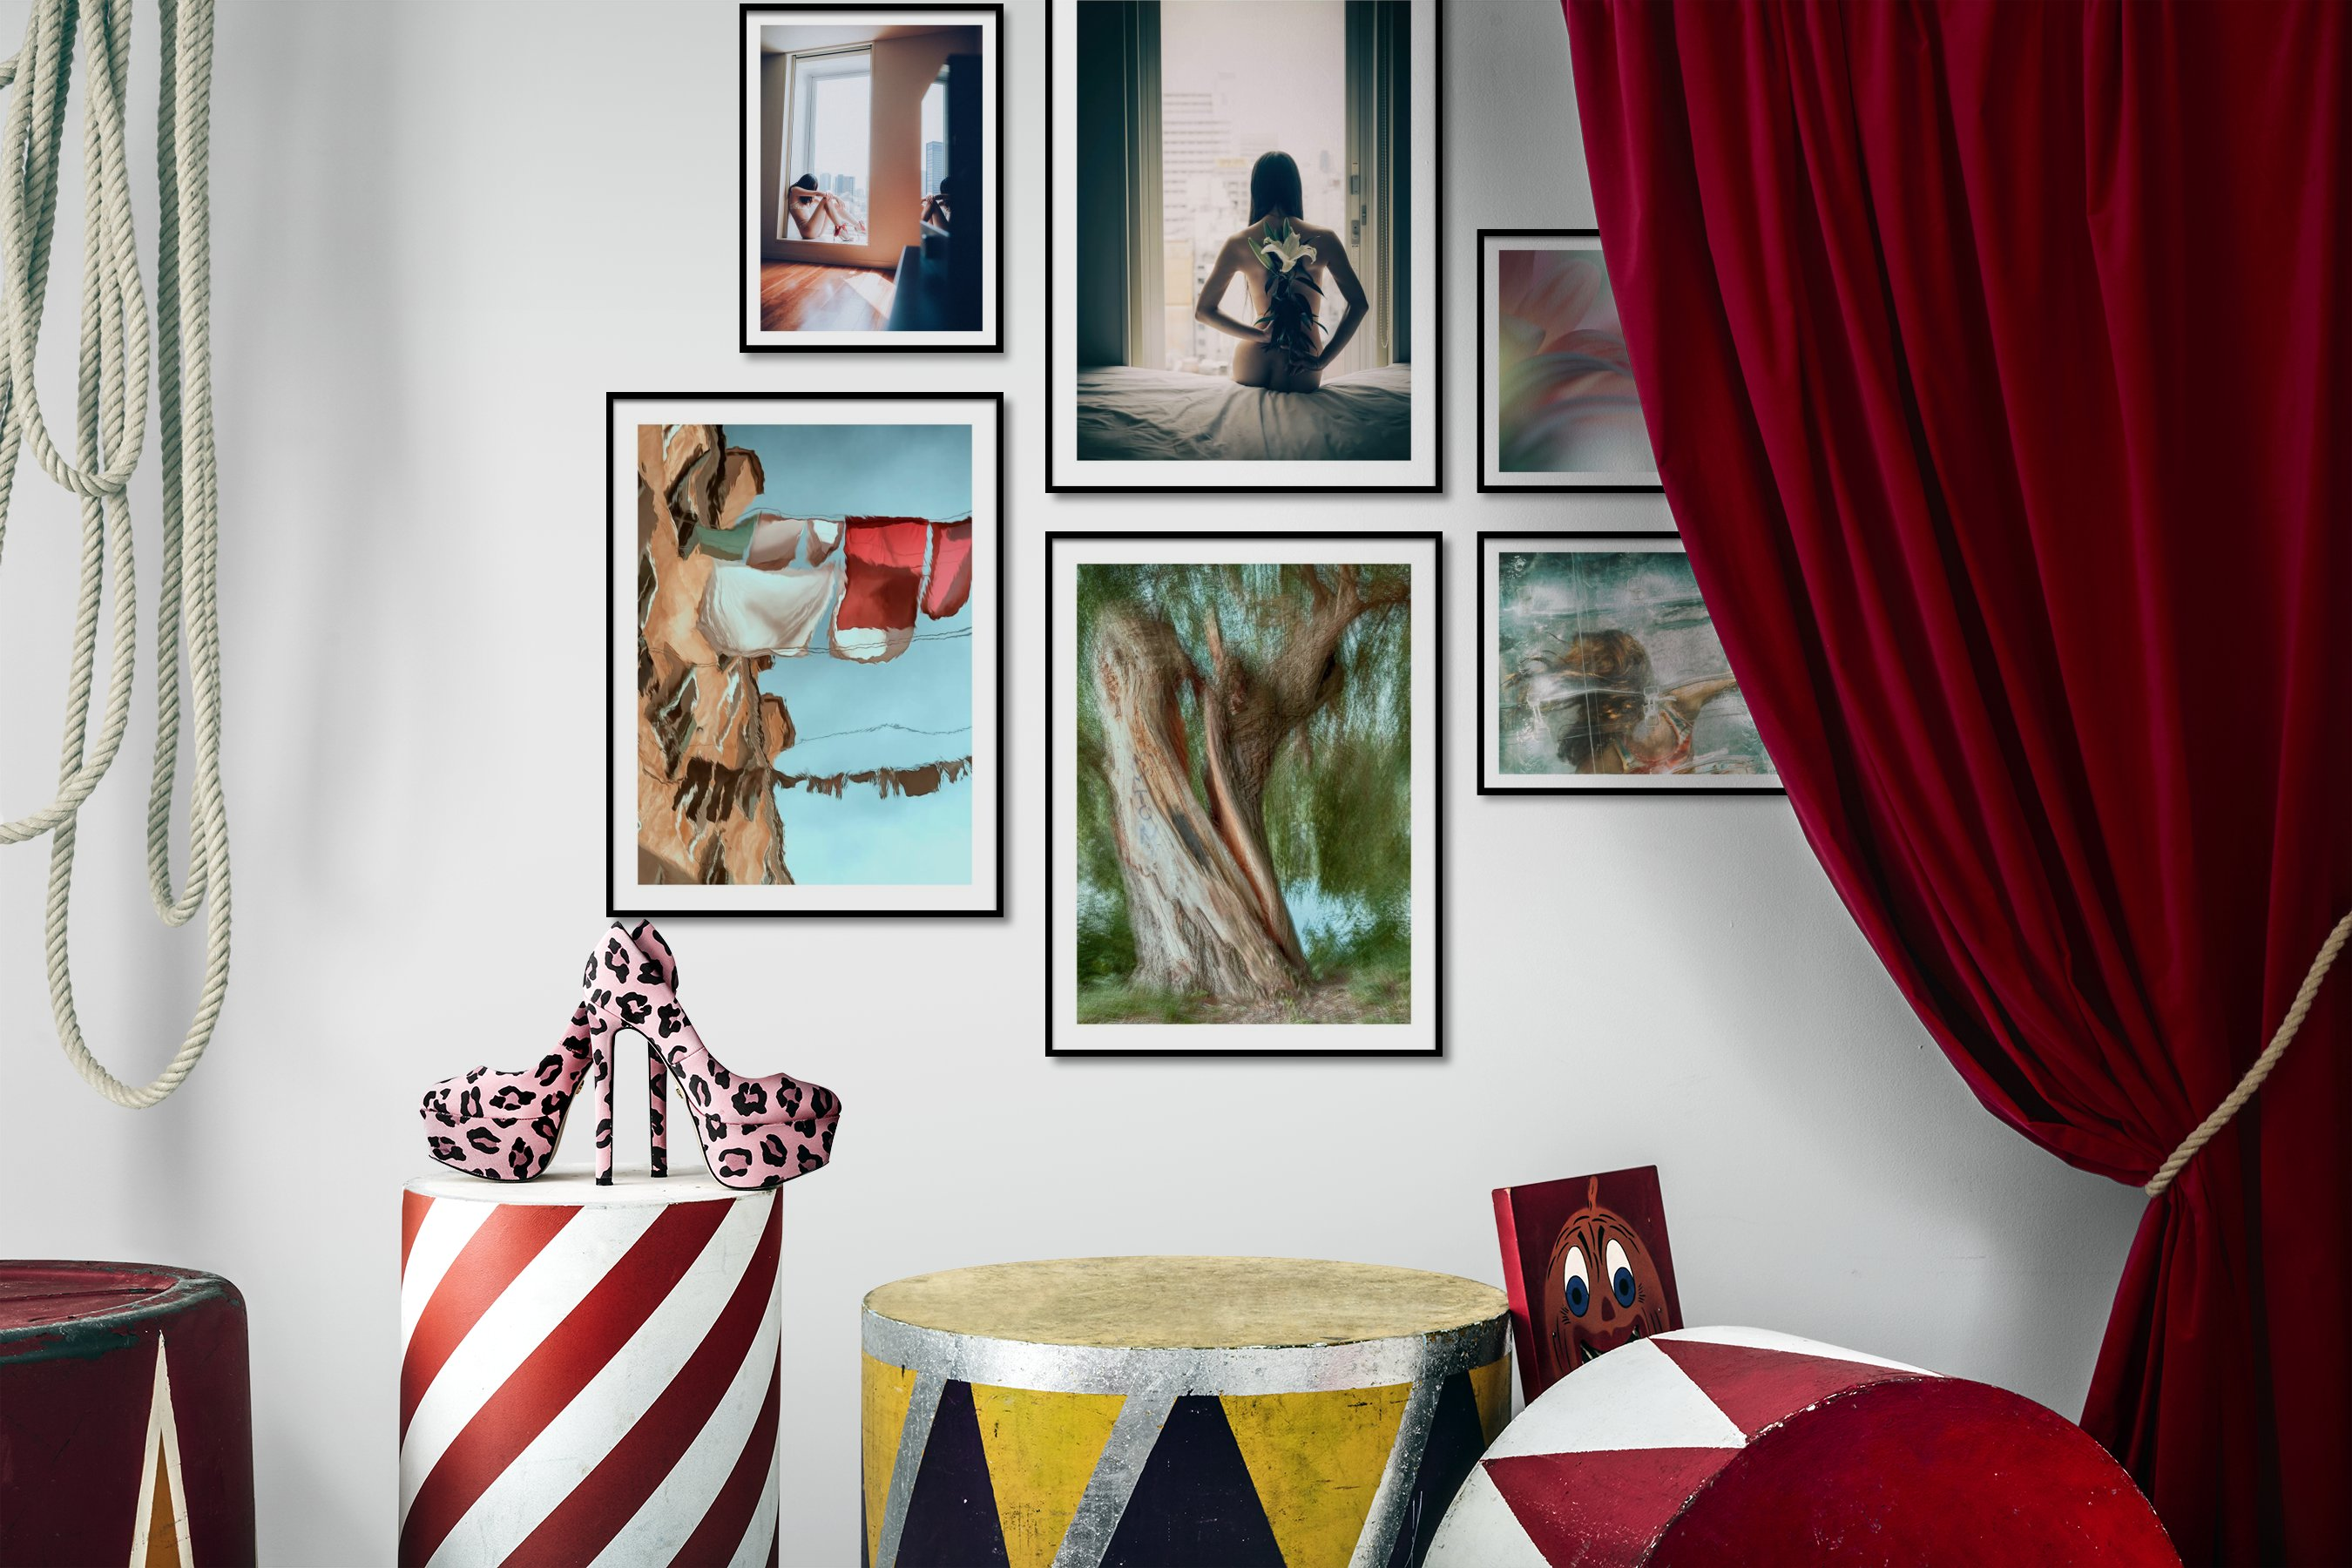 Gallery wall idea with six framed pictures arranged on a wall depicting Fashion & Beauty, City Life, For the Moderate, For the Maximalist, Nature, and Artsy